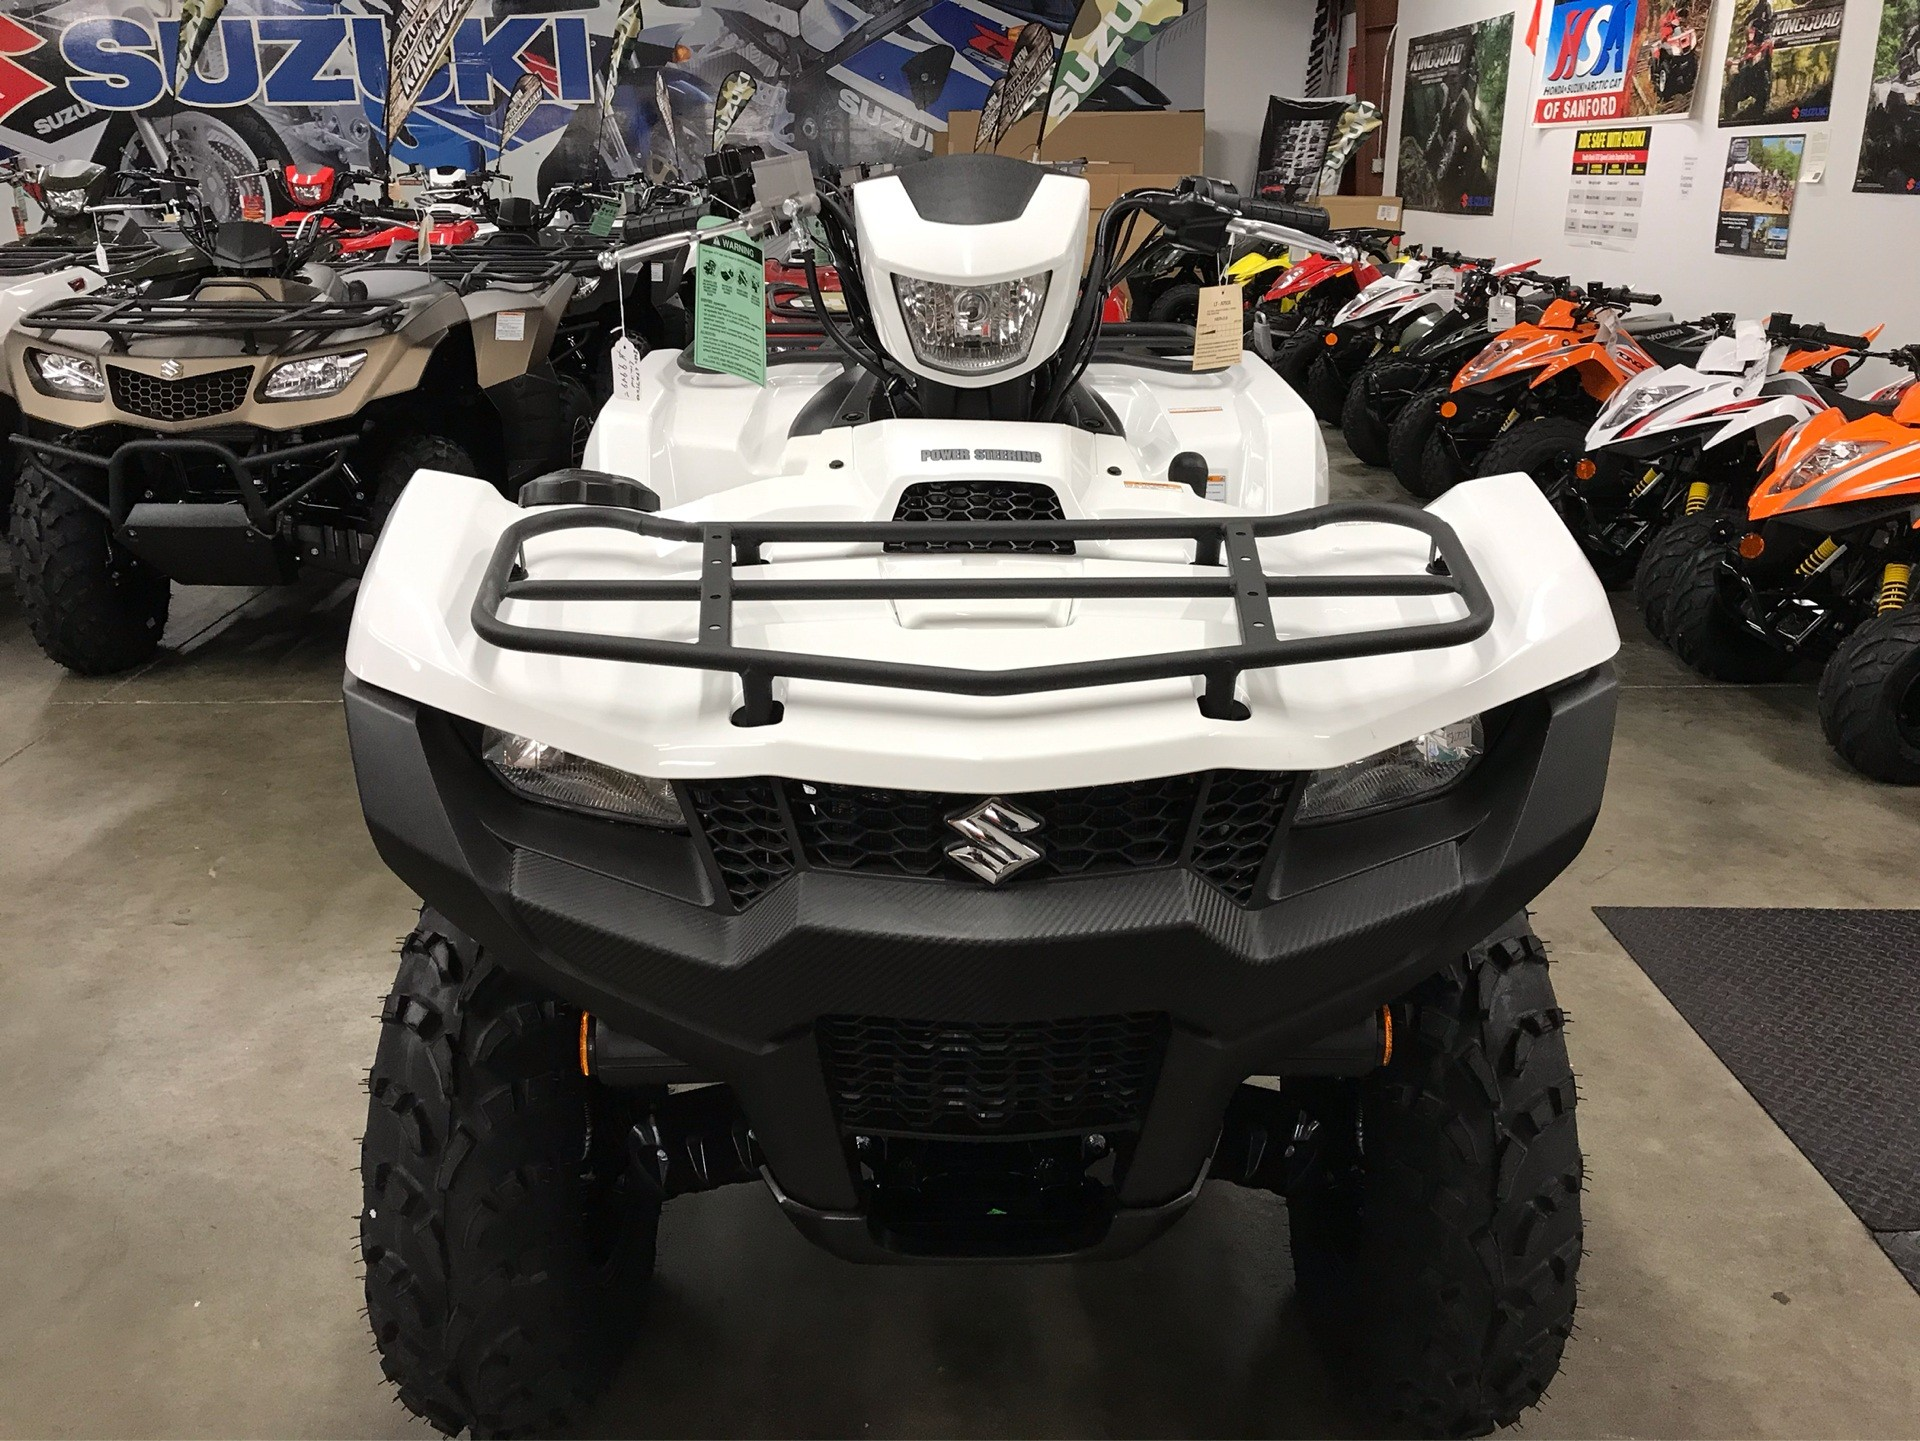 2020 Suzuki KingQuad 750AXi Power Steering SE in Sanford, North Carolina - Photo 9